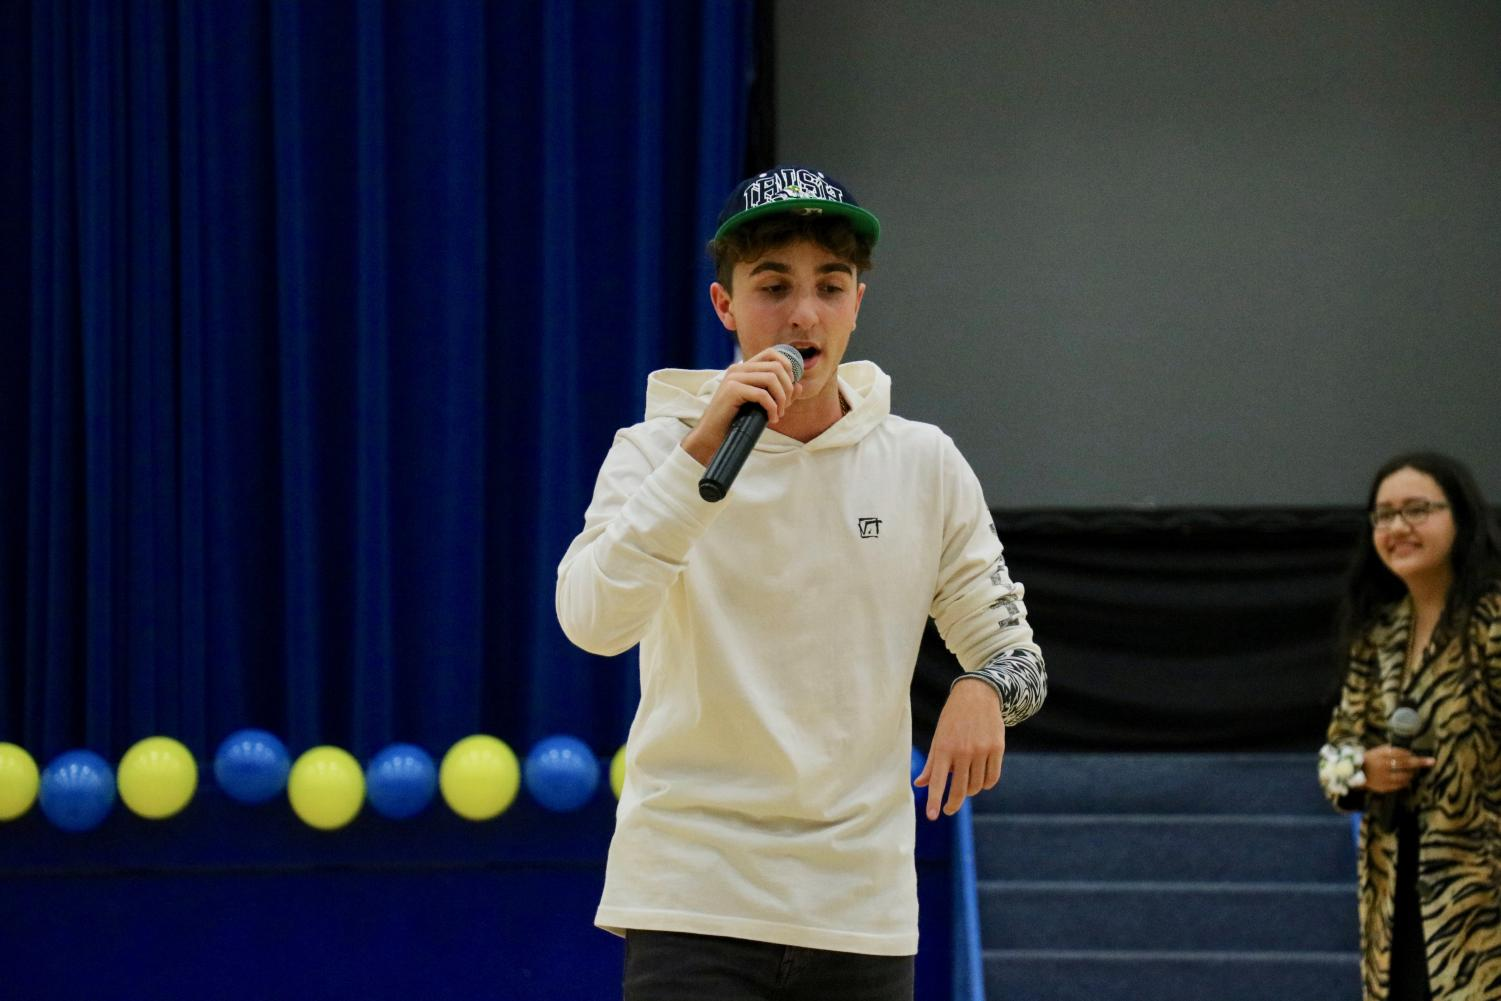 Matteo Barzagli, '20, raps in Italian at the homecoming pep rally.